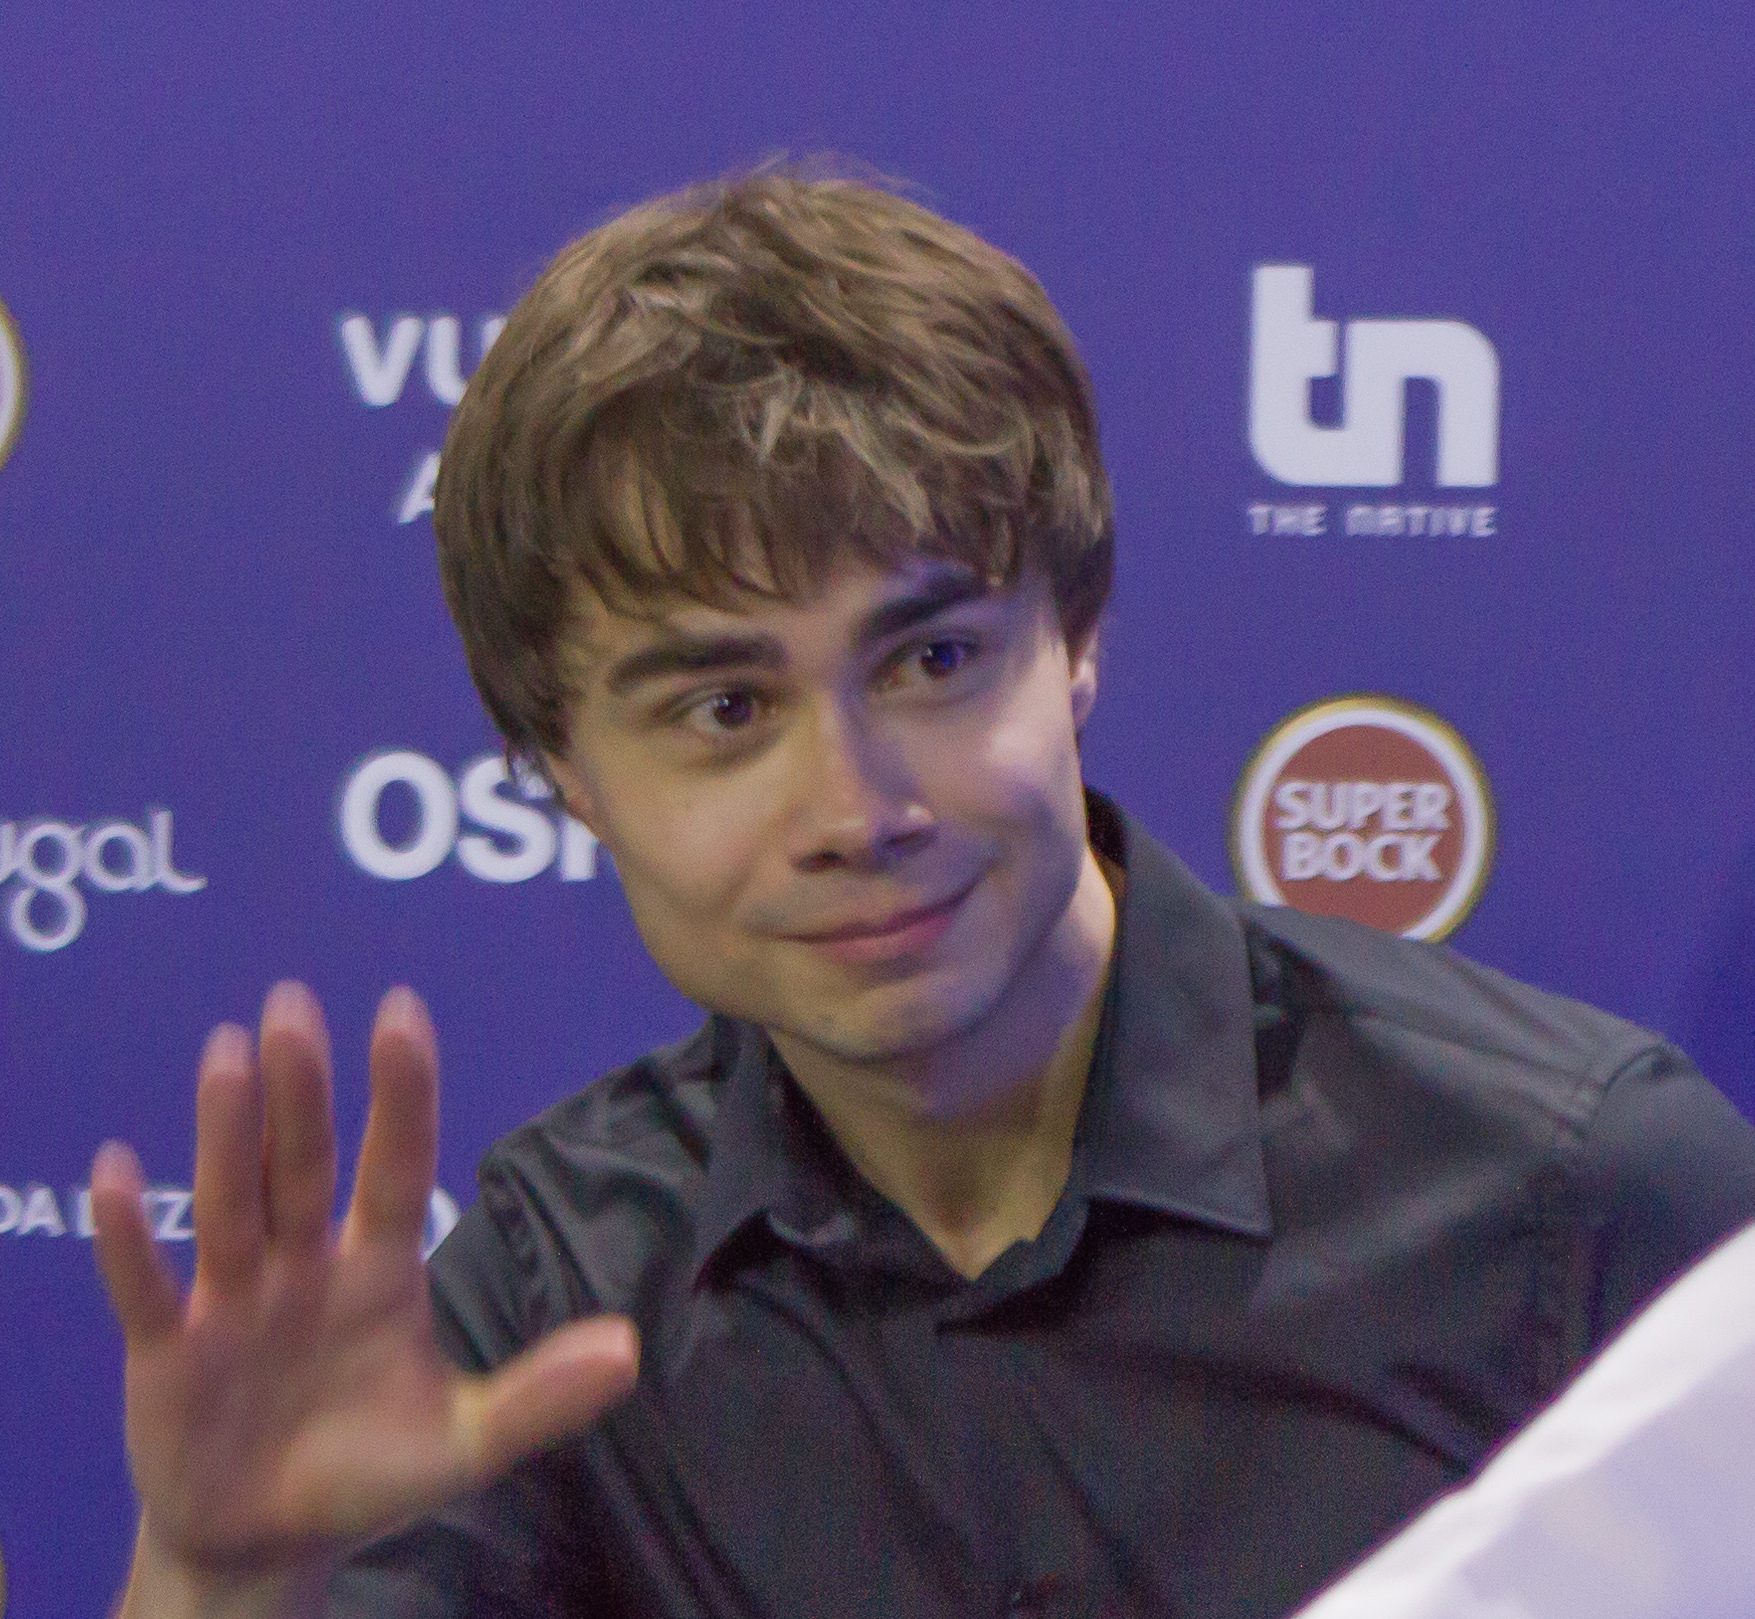 The 33-year old son of father Igor Alexandrovich Rybak and mother Natalia Valentinovna Rybak Alexander Rybak in 2019 photo. Alexander Rybak earned a  million dollar salary - leaving the net worth at 3 million in 2019